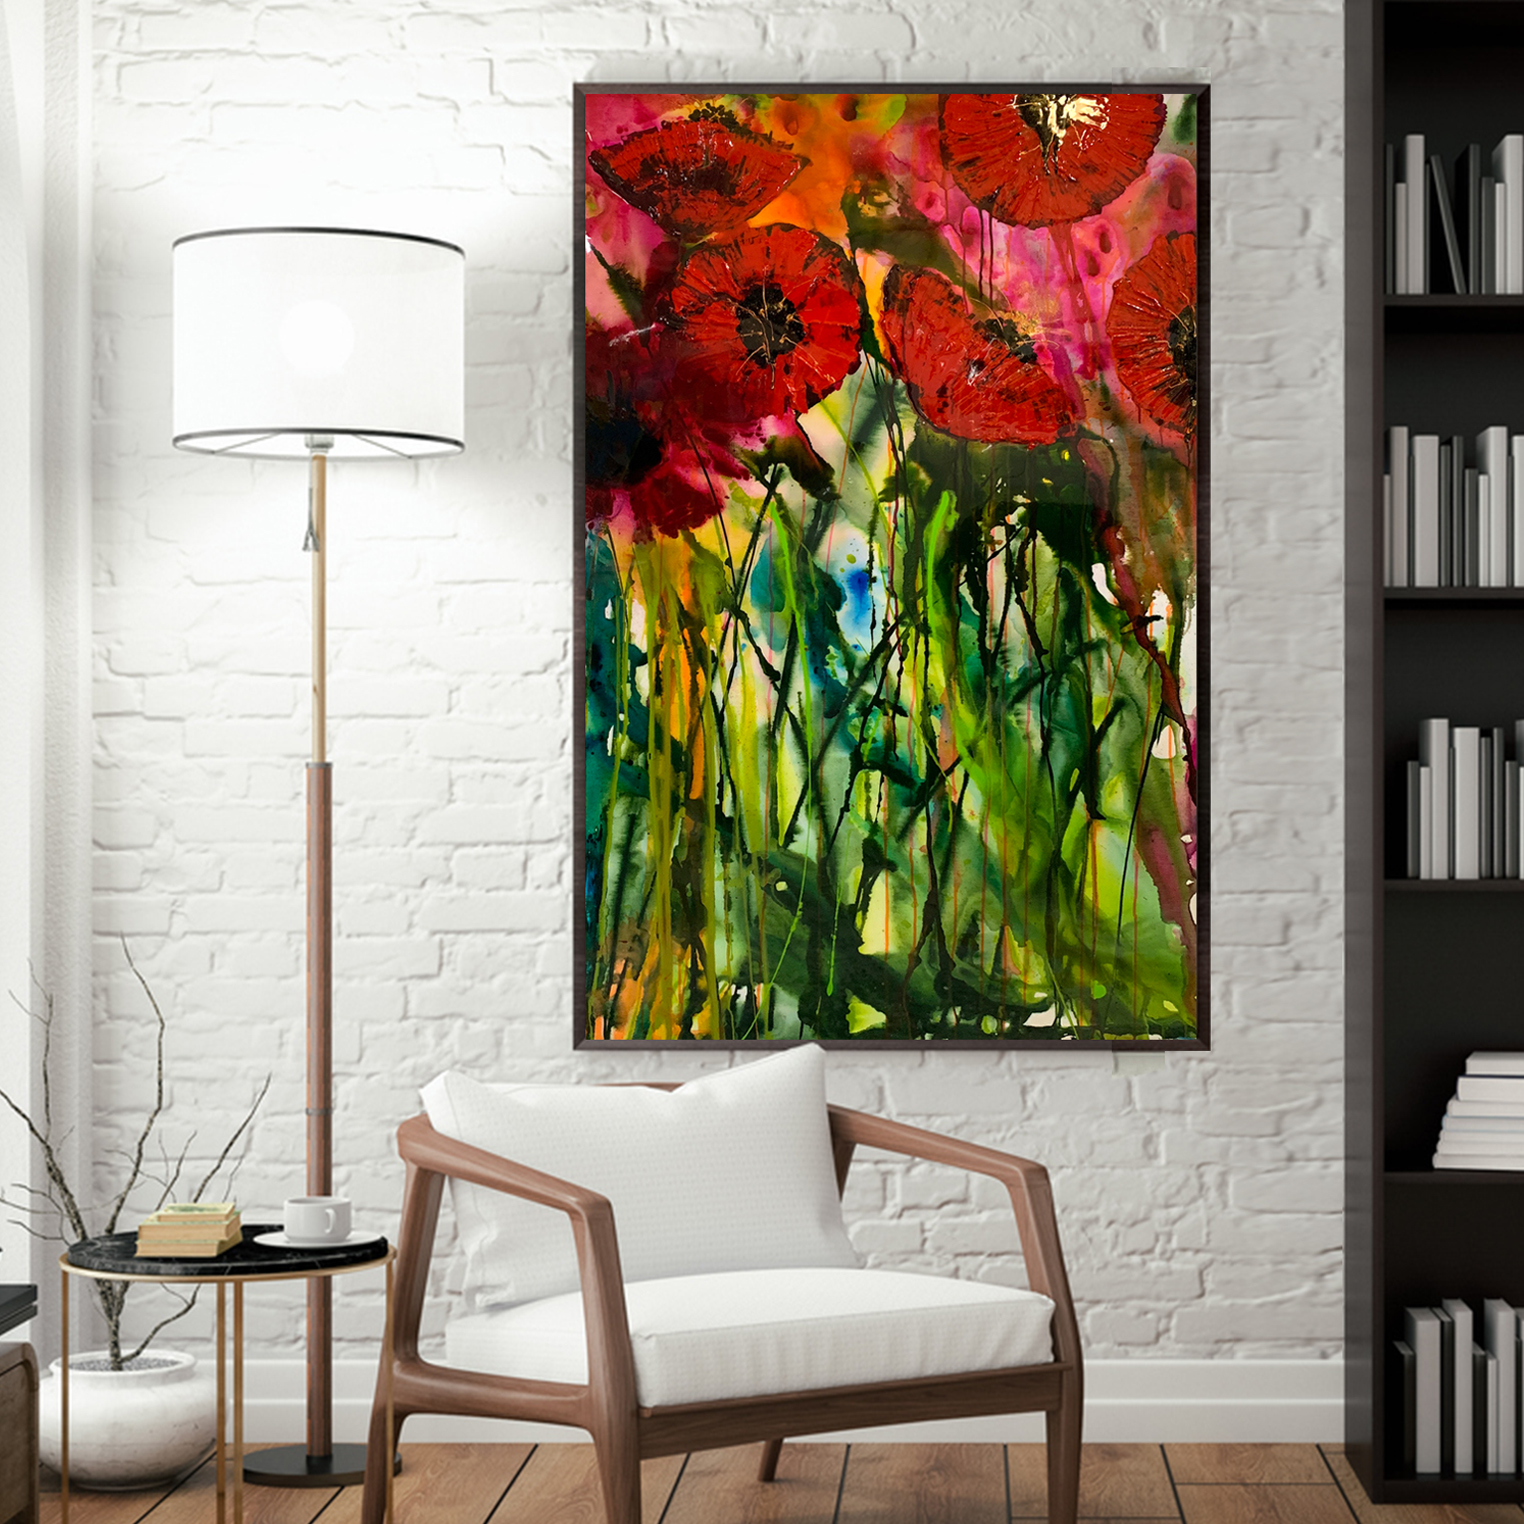 Buy Original Modern Paintings Red Poppies